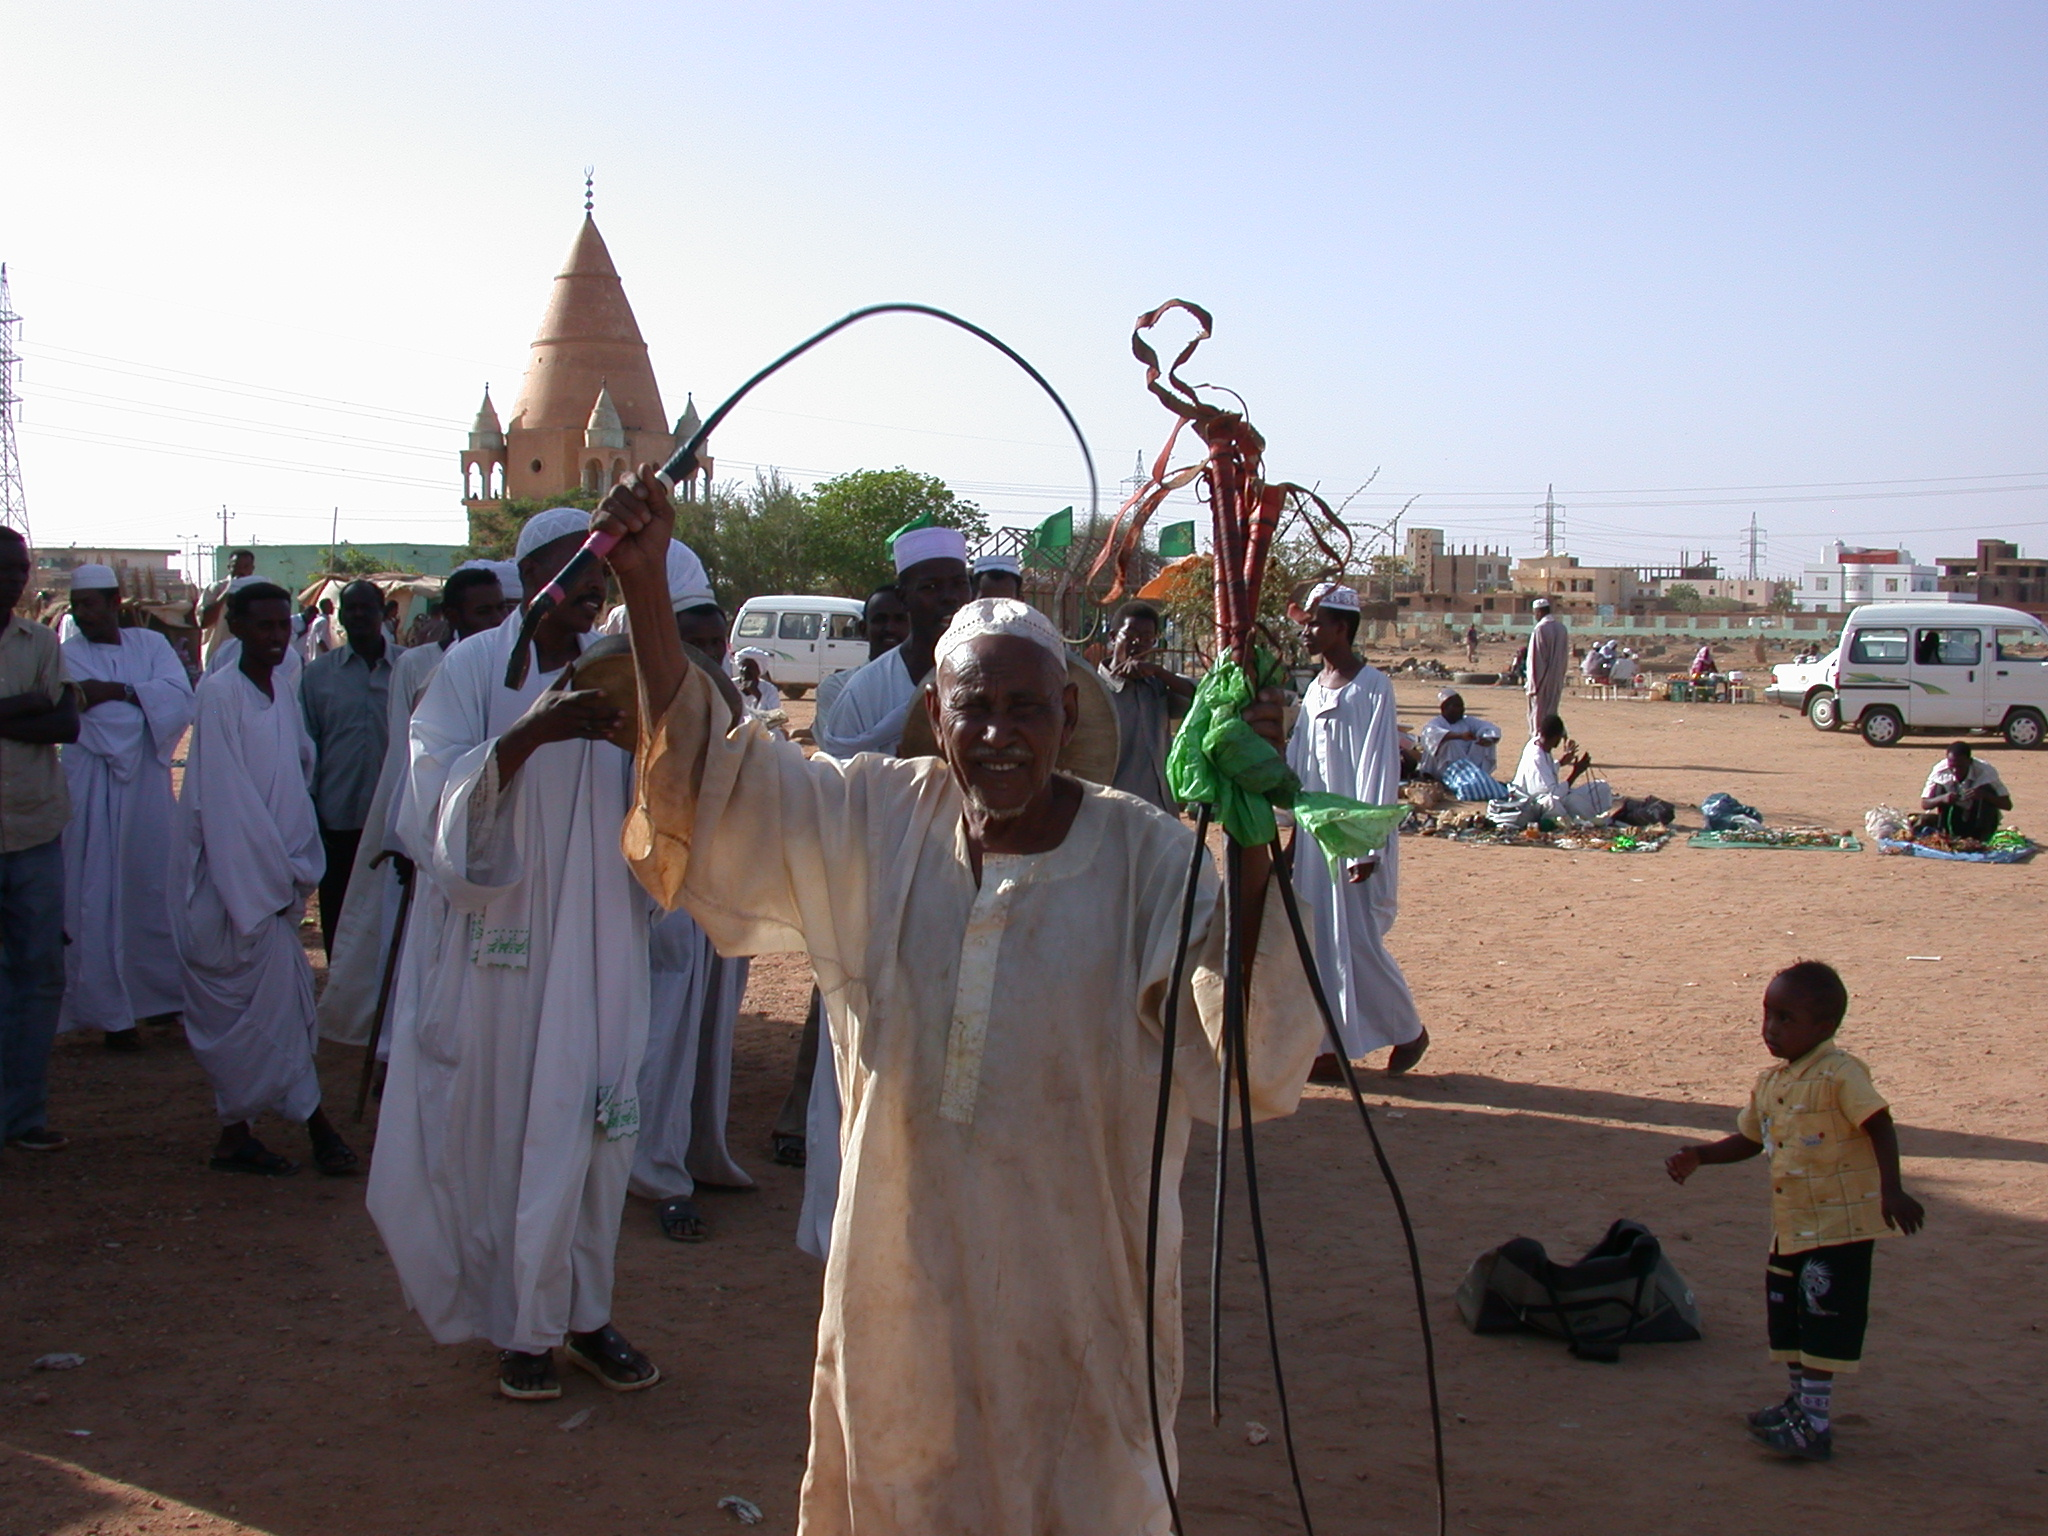 Guy Selling Whips at Sufi Dancing Site, Omdurman, Sudan